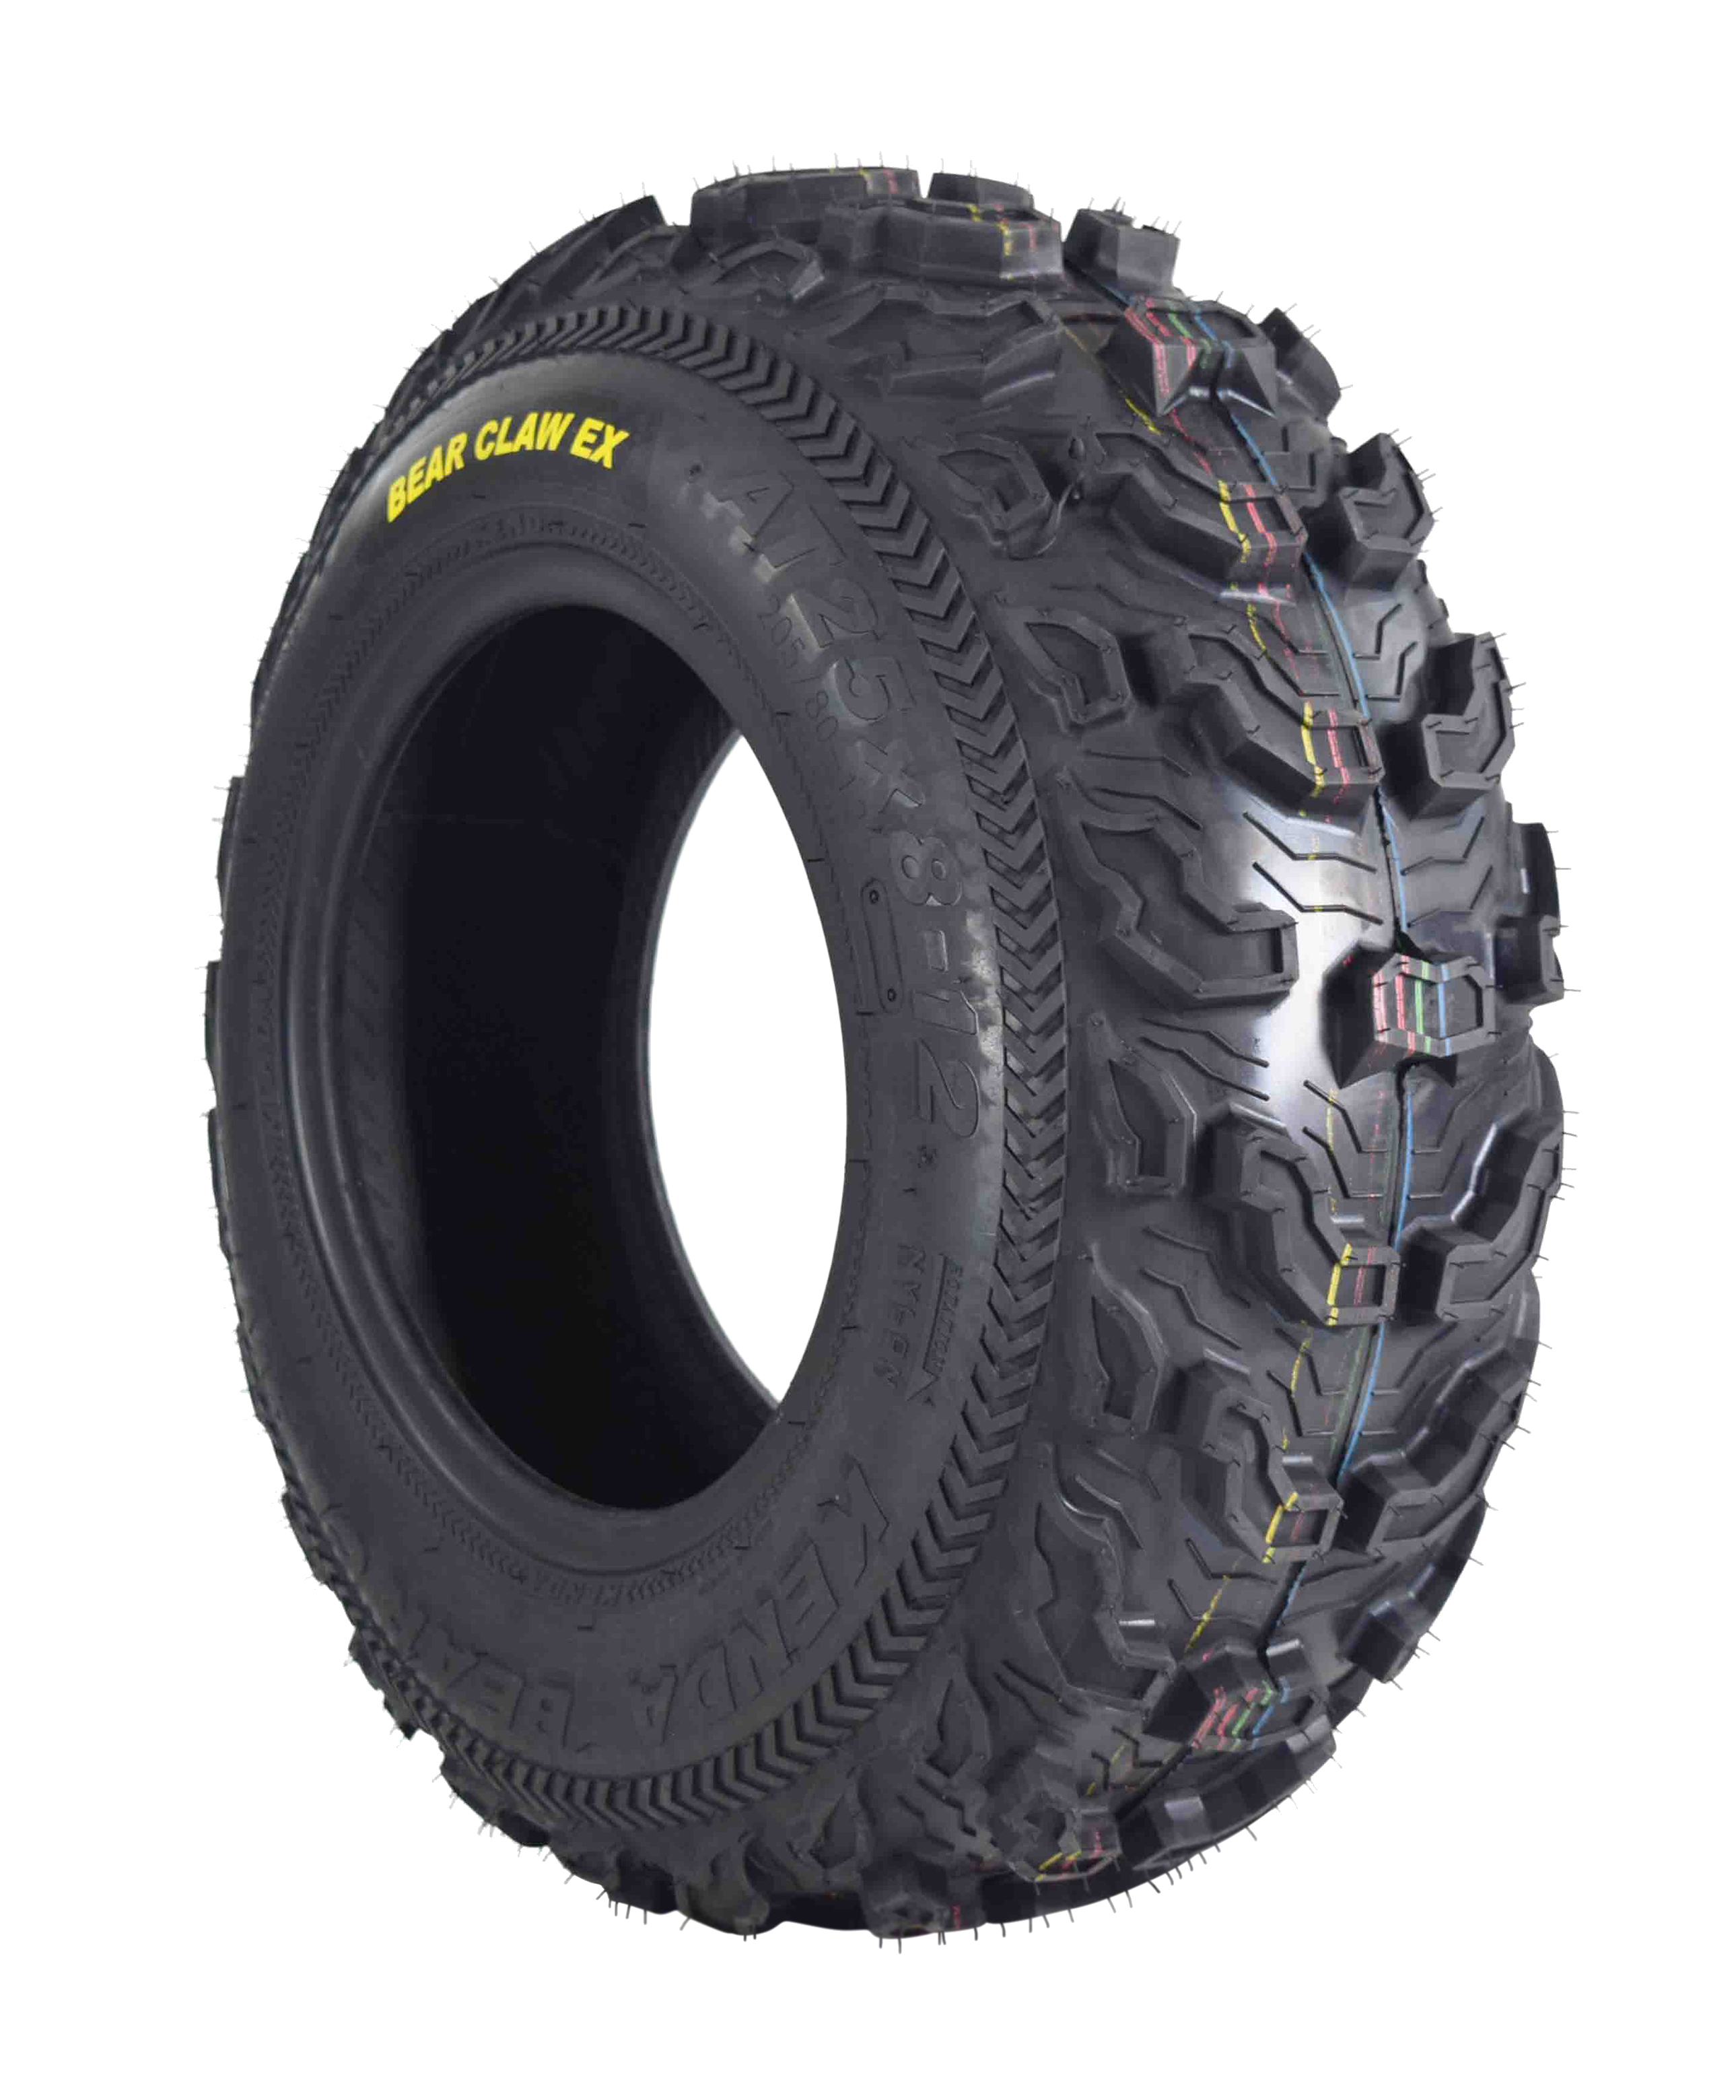 Kenda-Bear-Claw-EX-25x8-12-Front-ATV-6-PLY-Tire-Bearclaw-25x8x12-Single-Tire-image-1